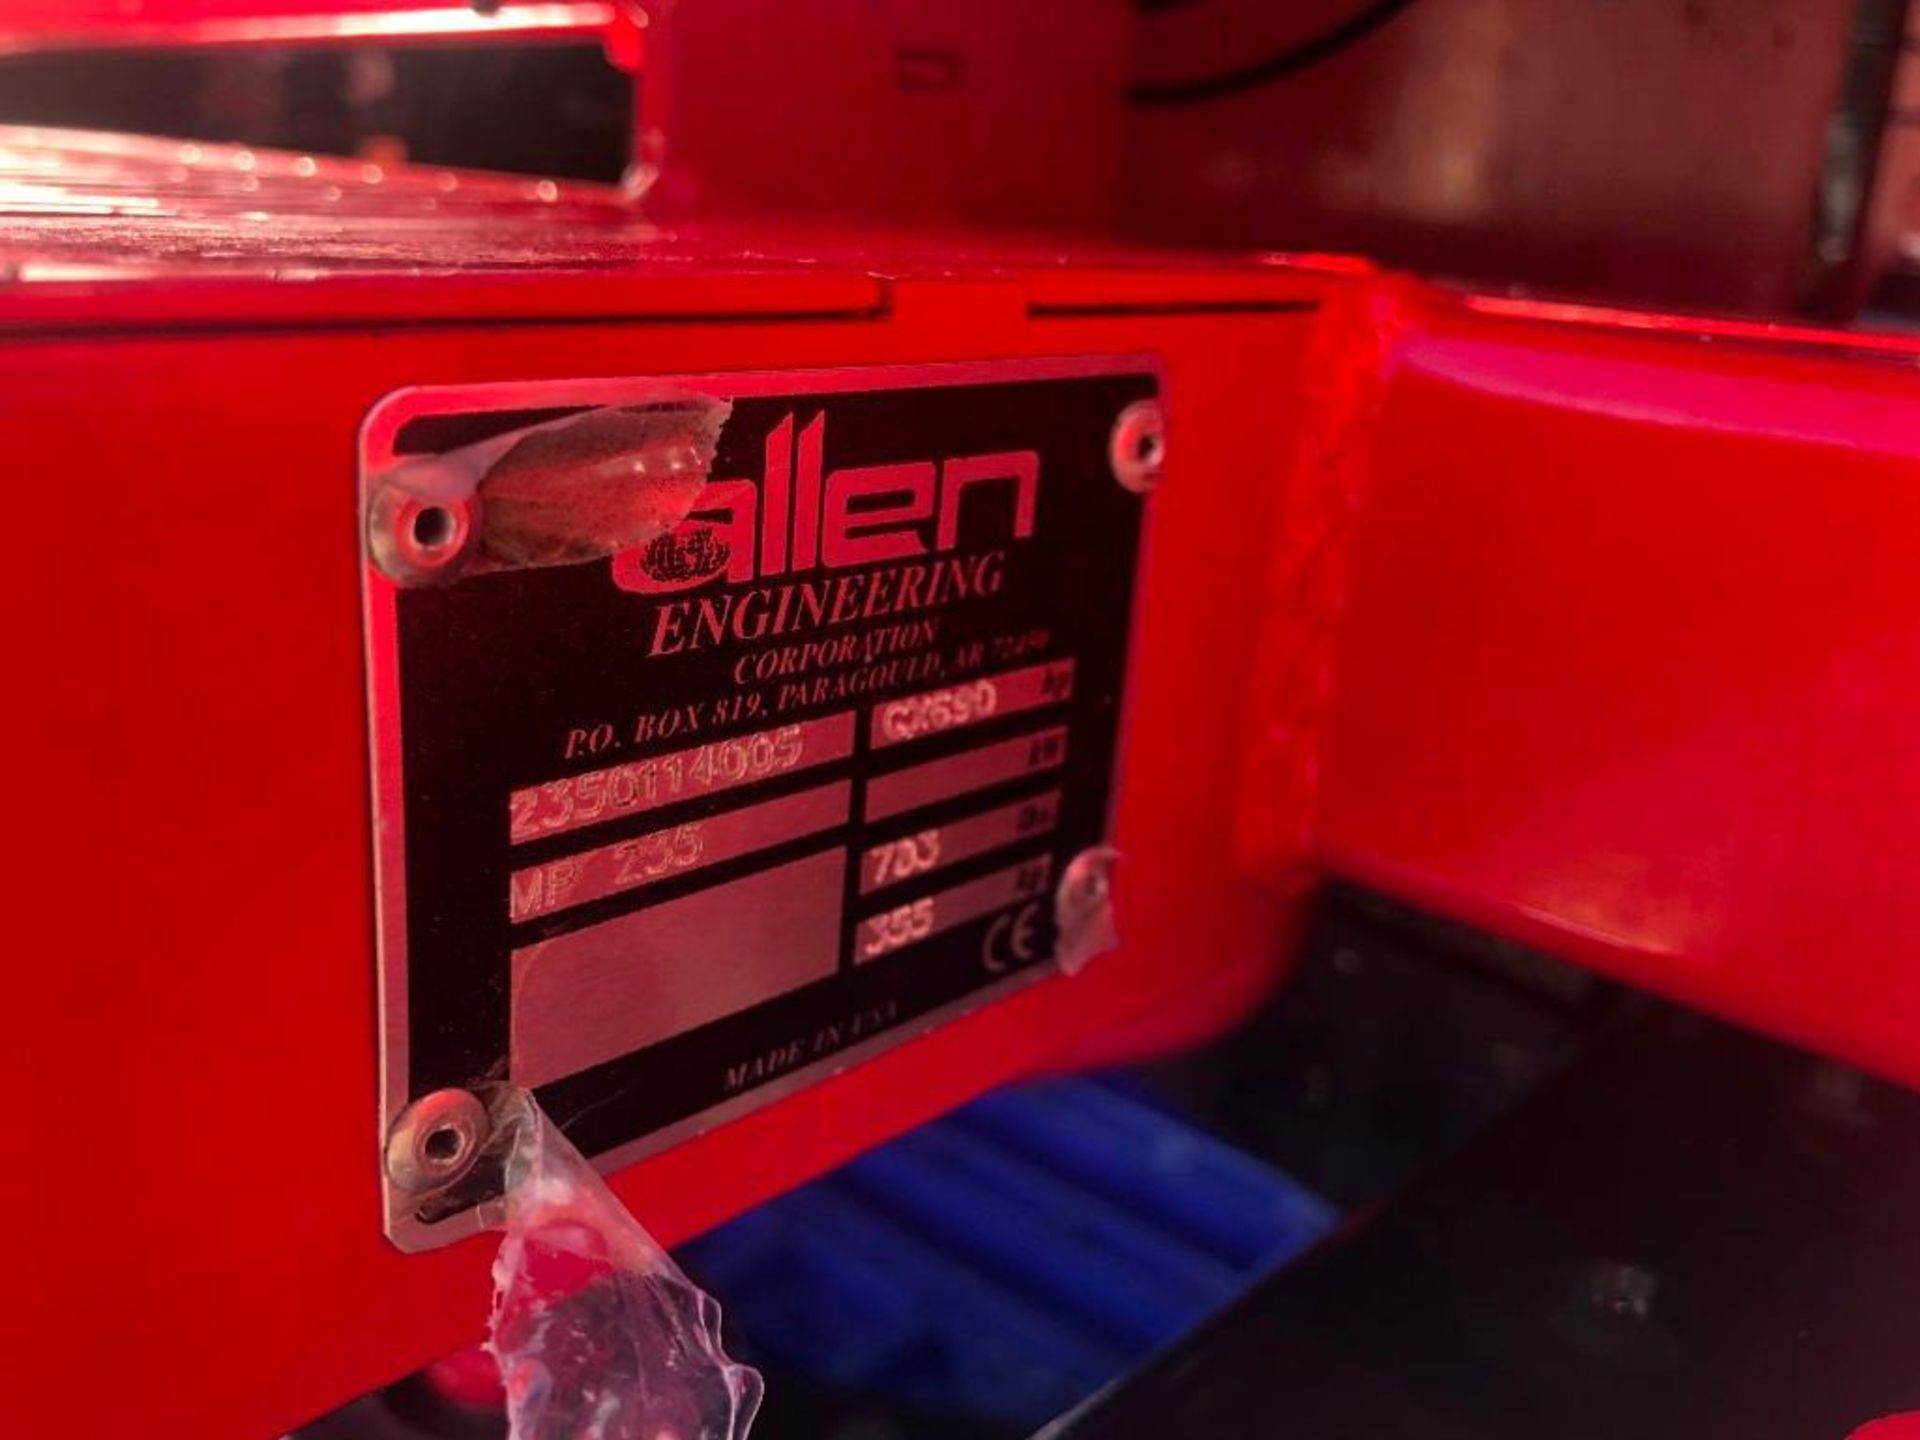 Allen MP235 Edger Riding Trowel, Serial #2350114005, 36.7 Hours, Model MP235. Located at 301 E Henry - Image 9 of 10